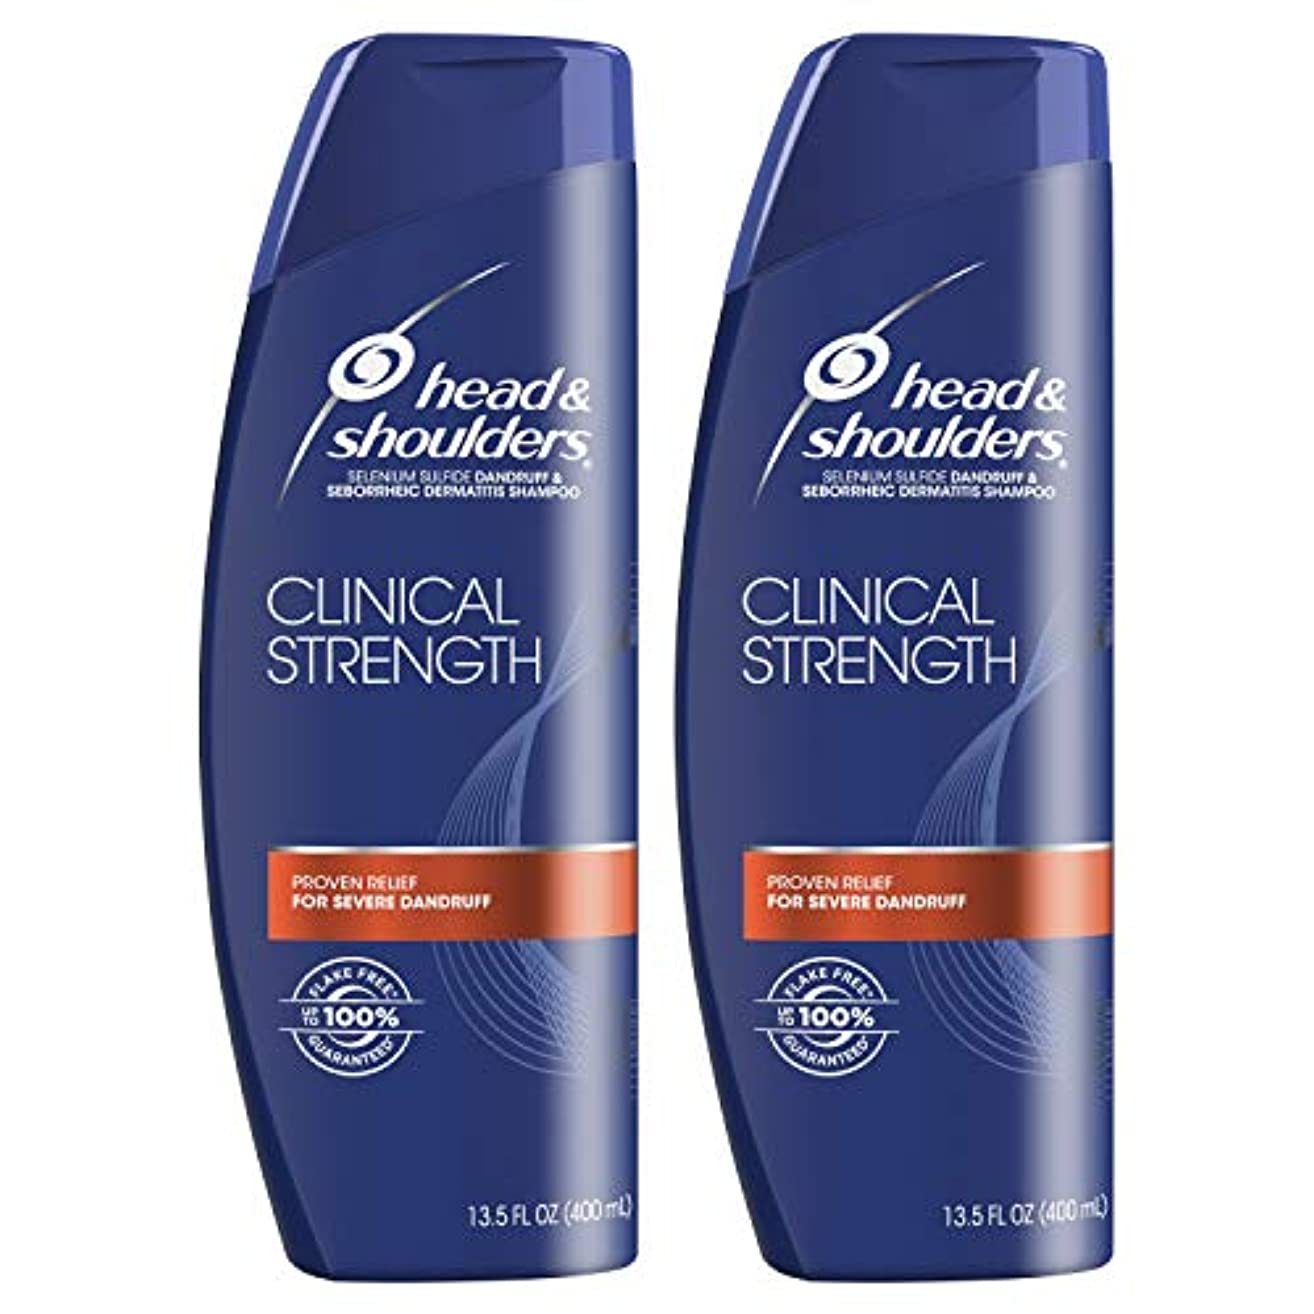 俳句スケルトンスライスHead and Shoulders Clinical Strength Dandruff and Seborrheic Dermatitisシャンプー、13.5 FL OZ